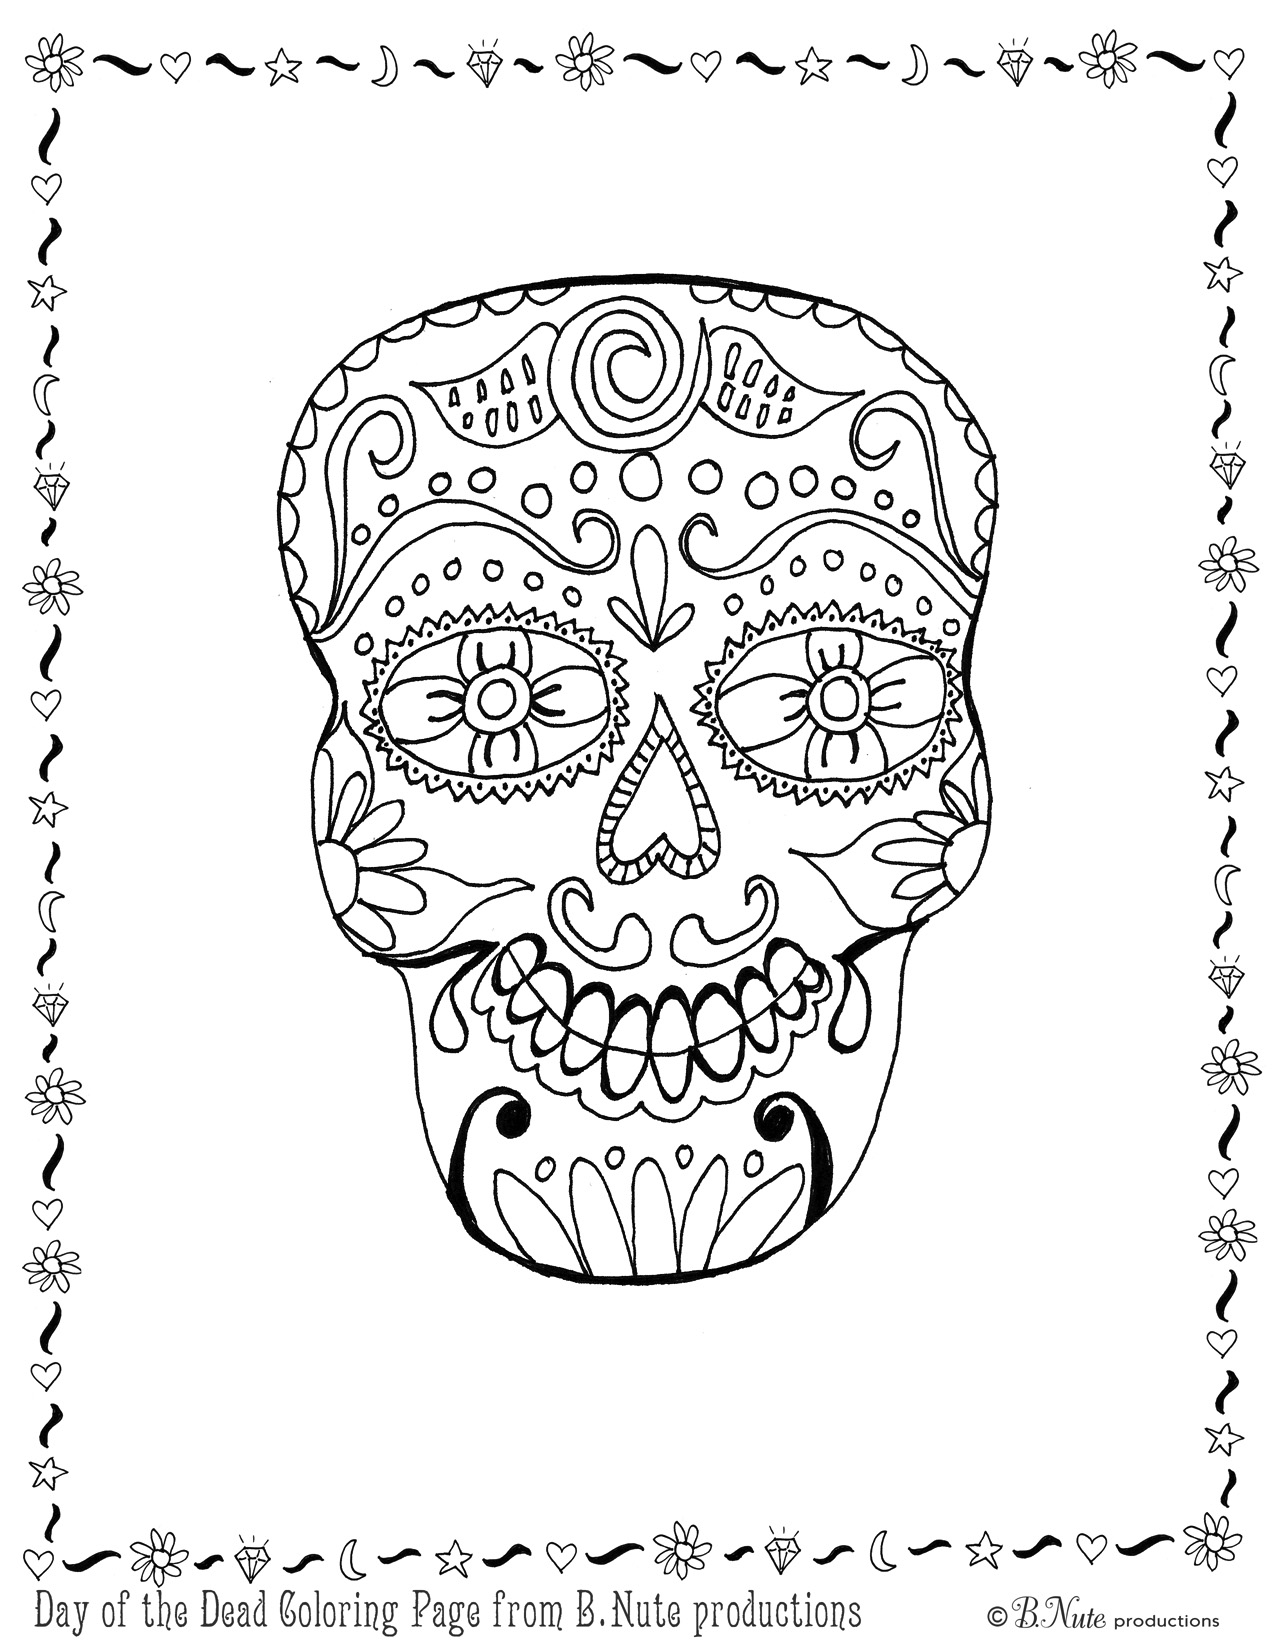 day of the dead printables bnute productions free printable day of the dead skull printables day of the dead